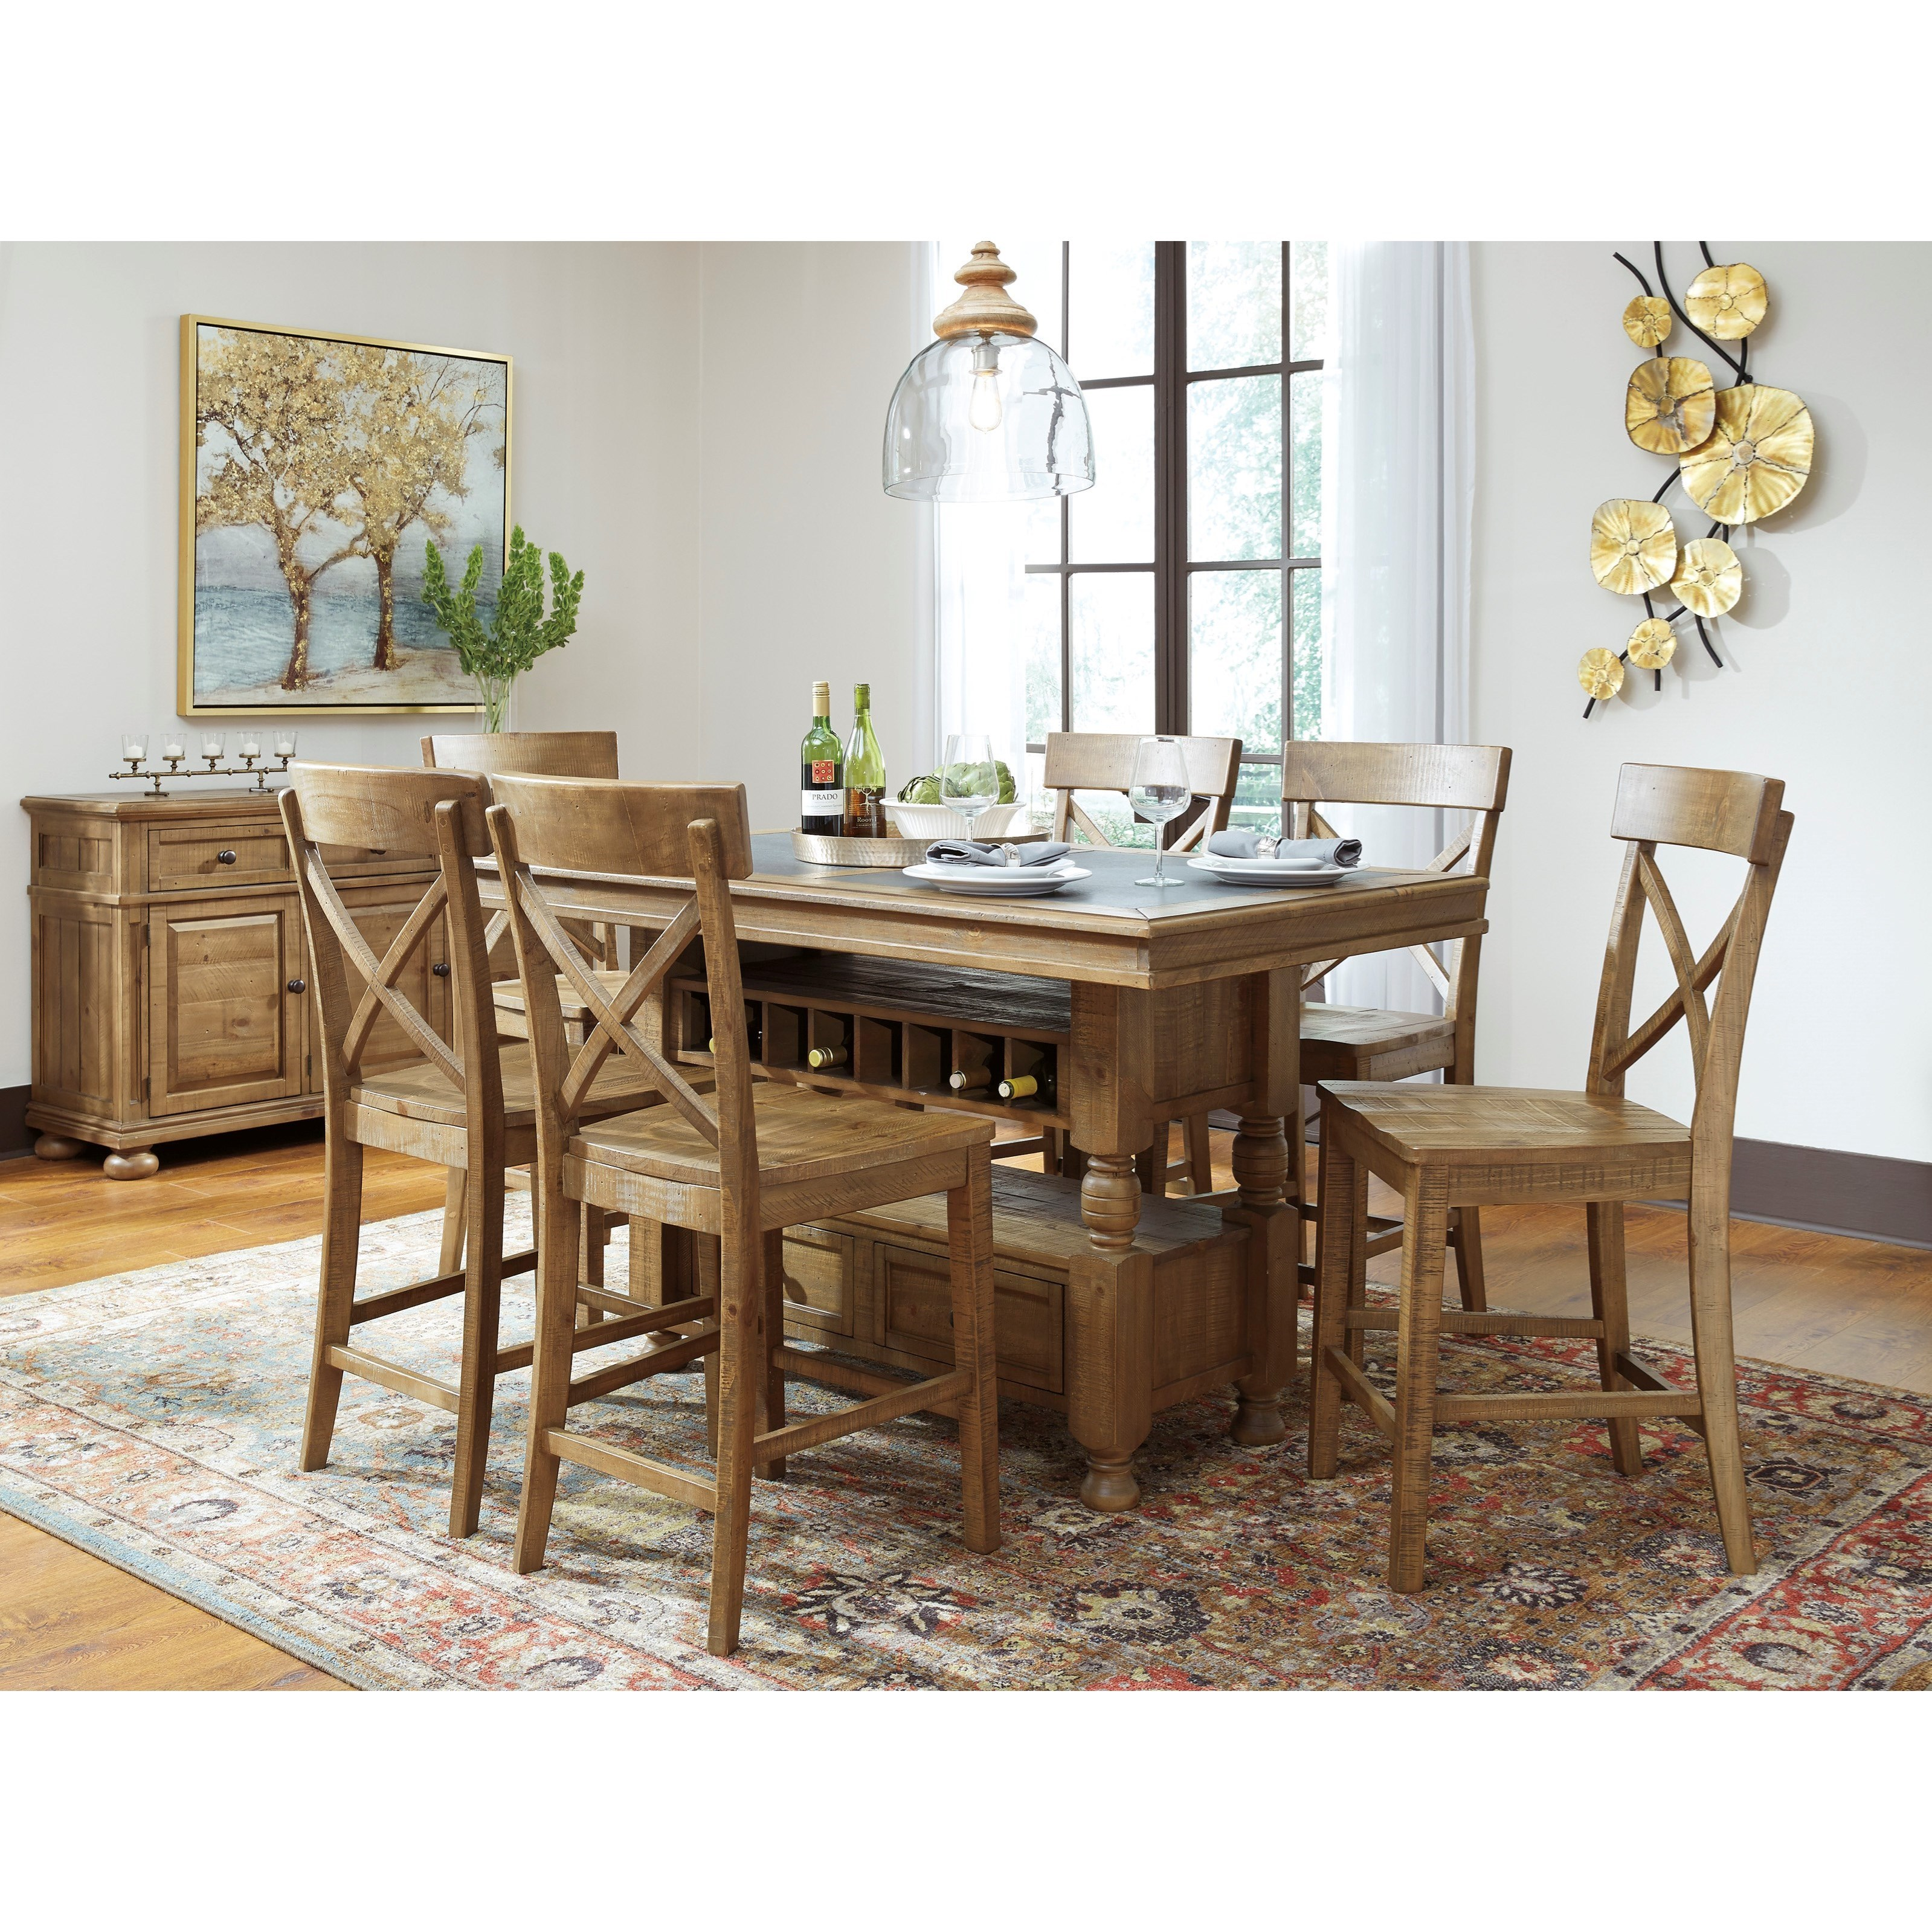 Signature Design by Ashley Trishley Casual Dining Room Group - Item Number: D659 Dining Room Group 5